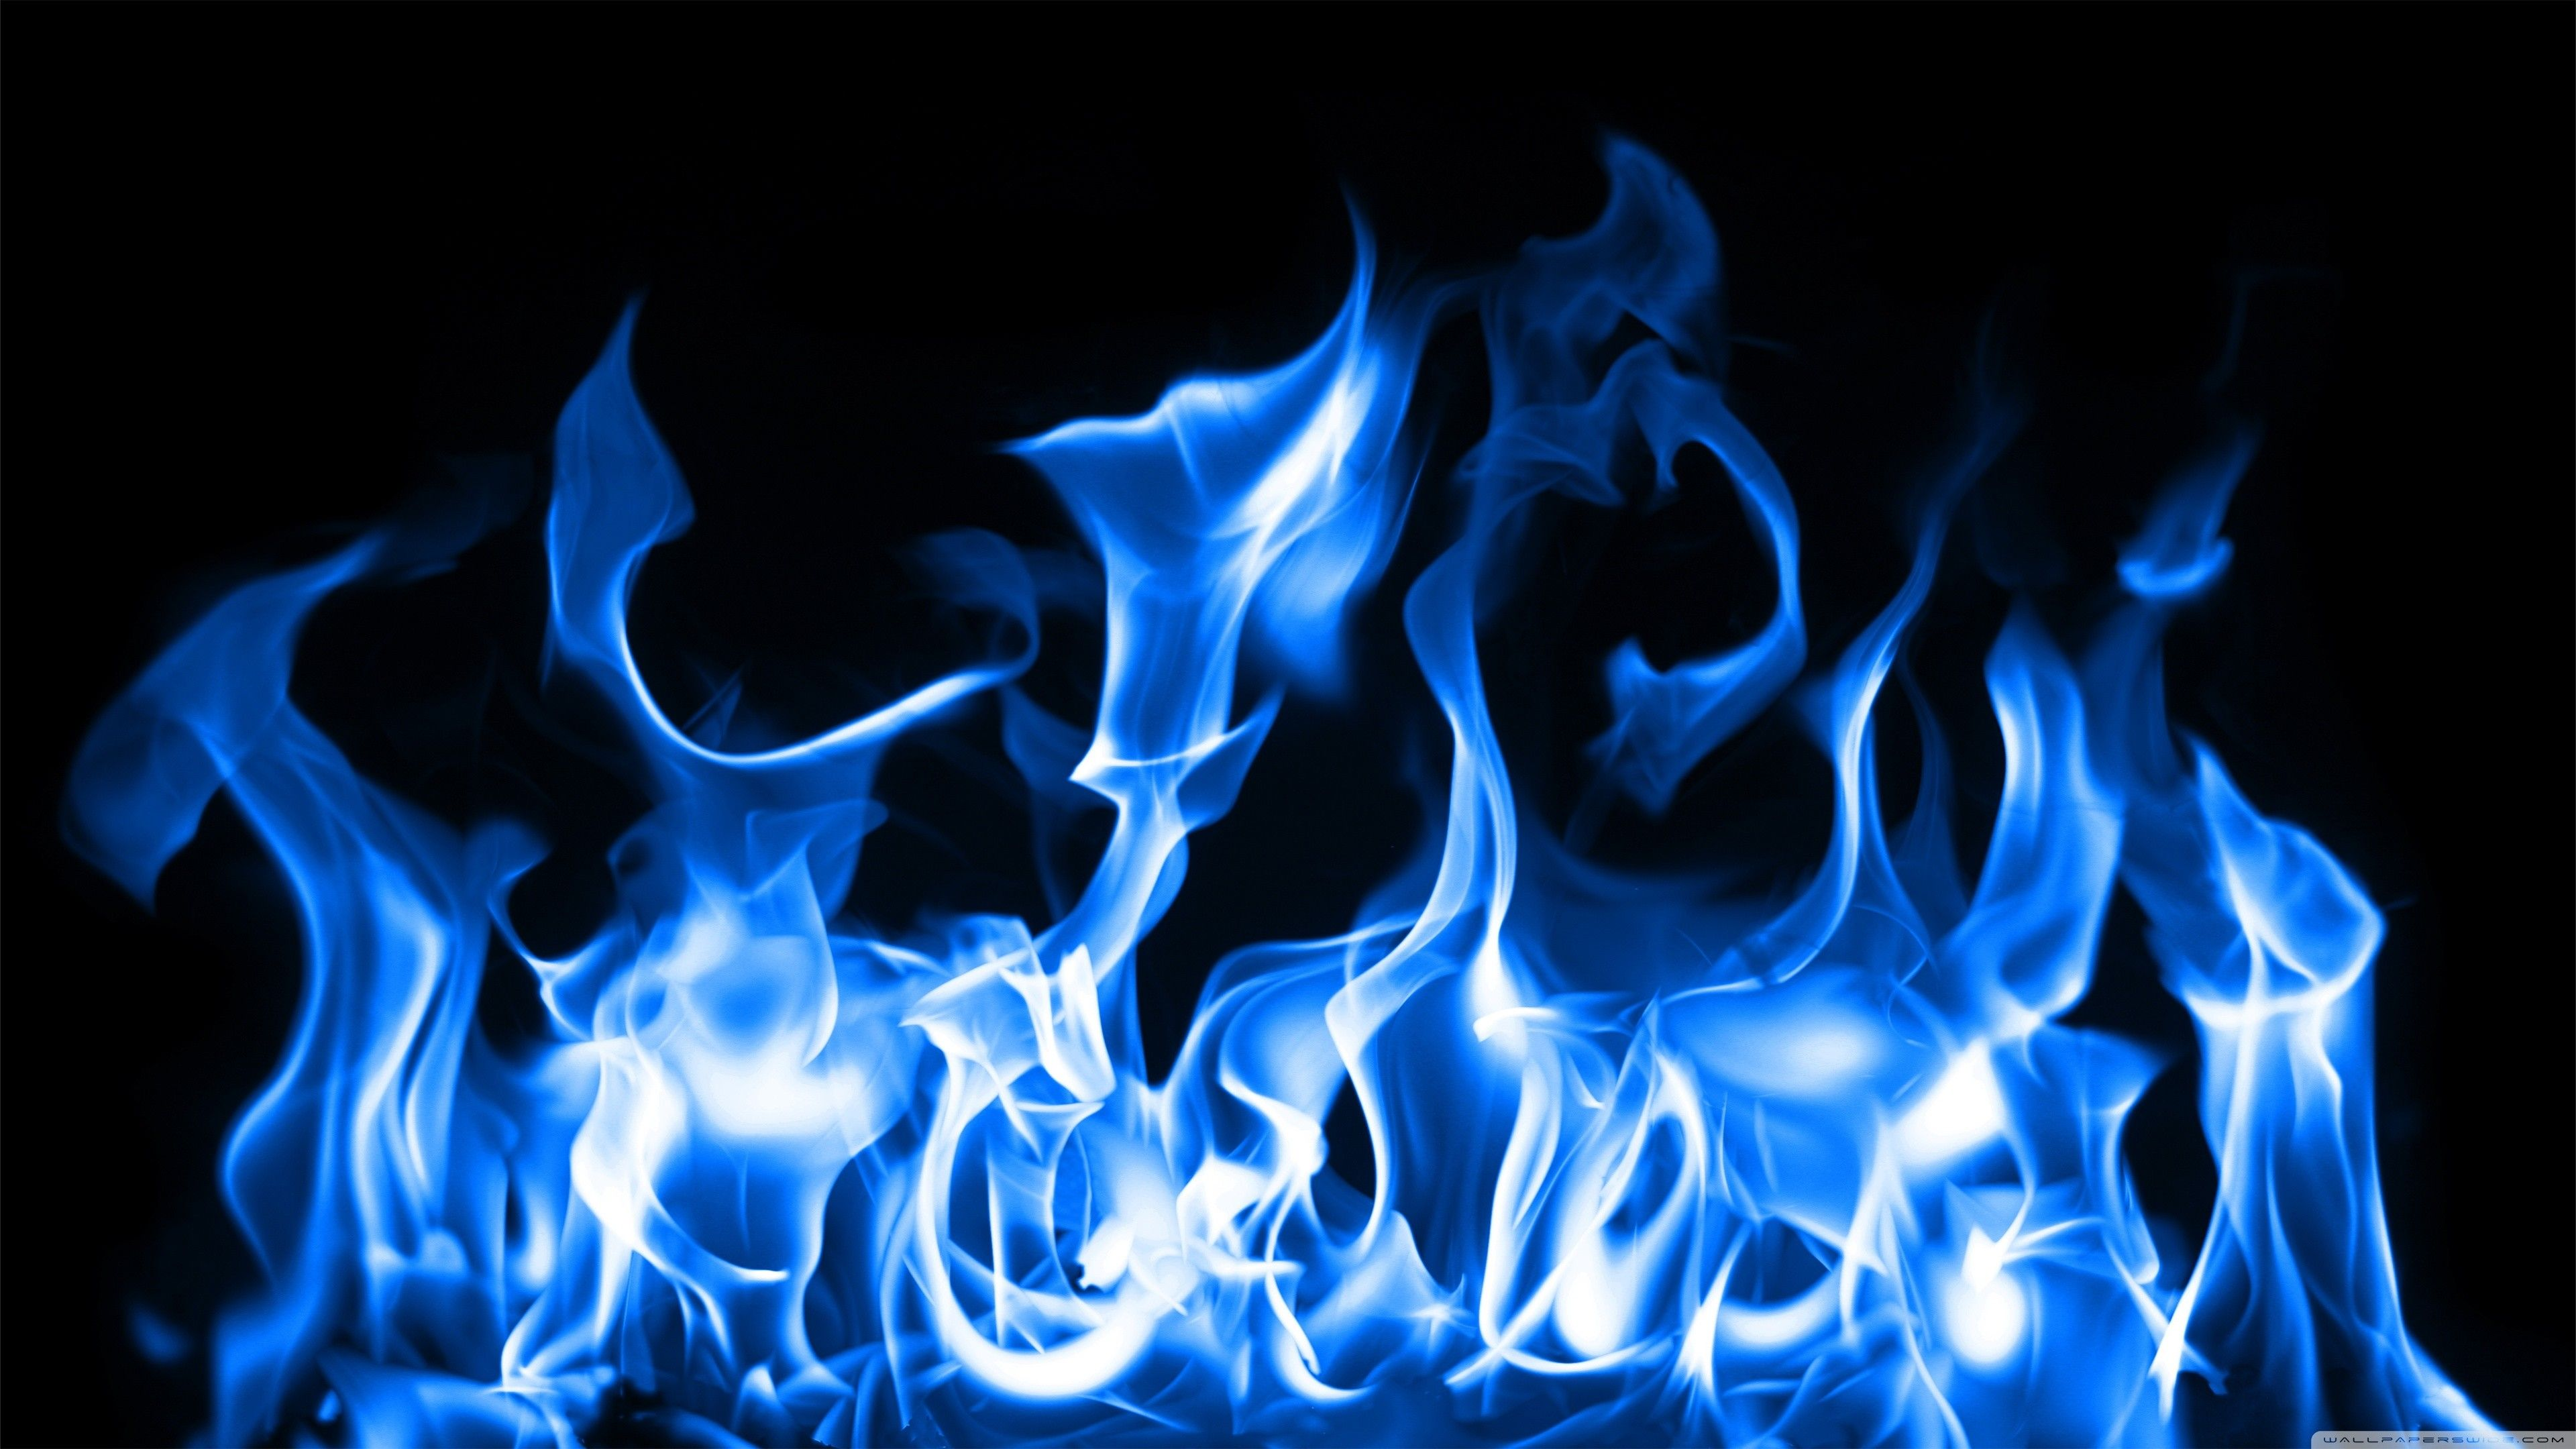 Blue Fire Wallpapers Top Free Blue Fire Backgrounds Wallpaperaccess